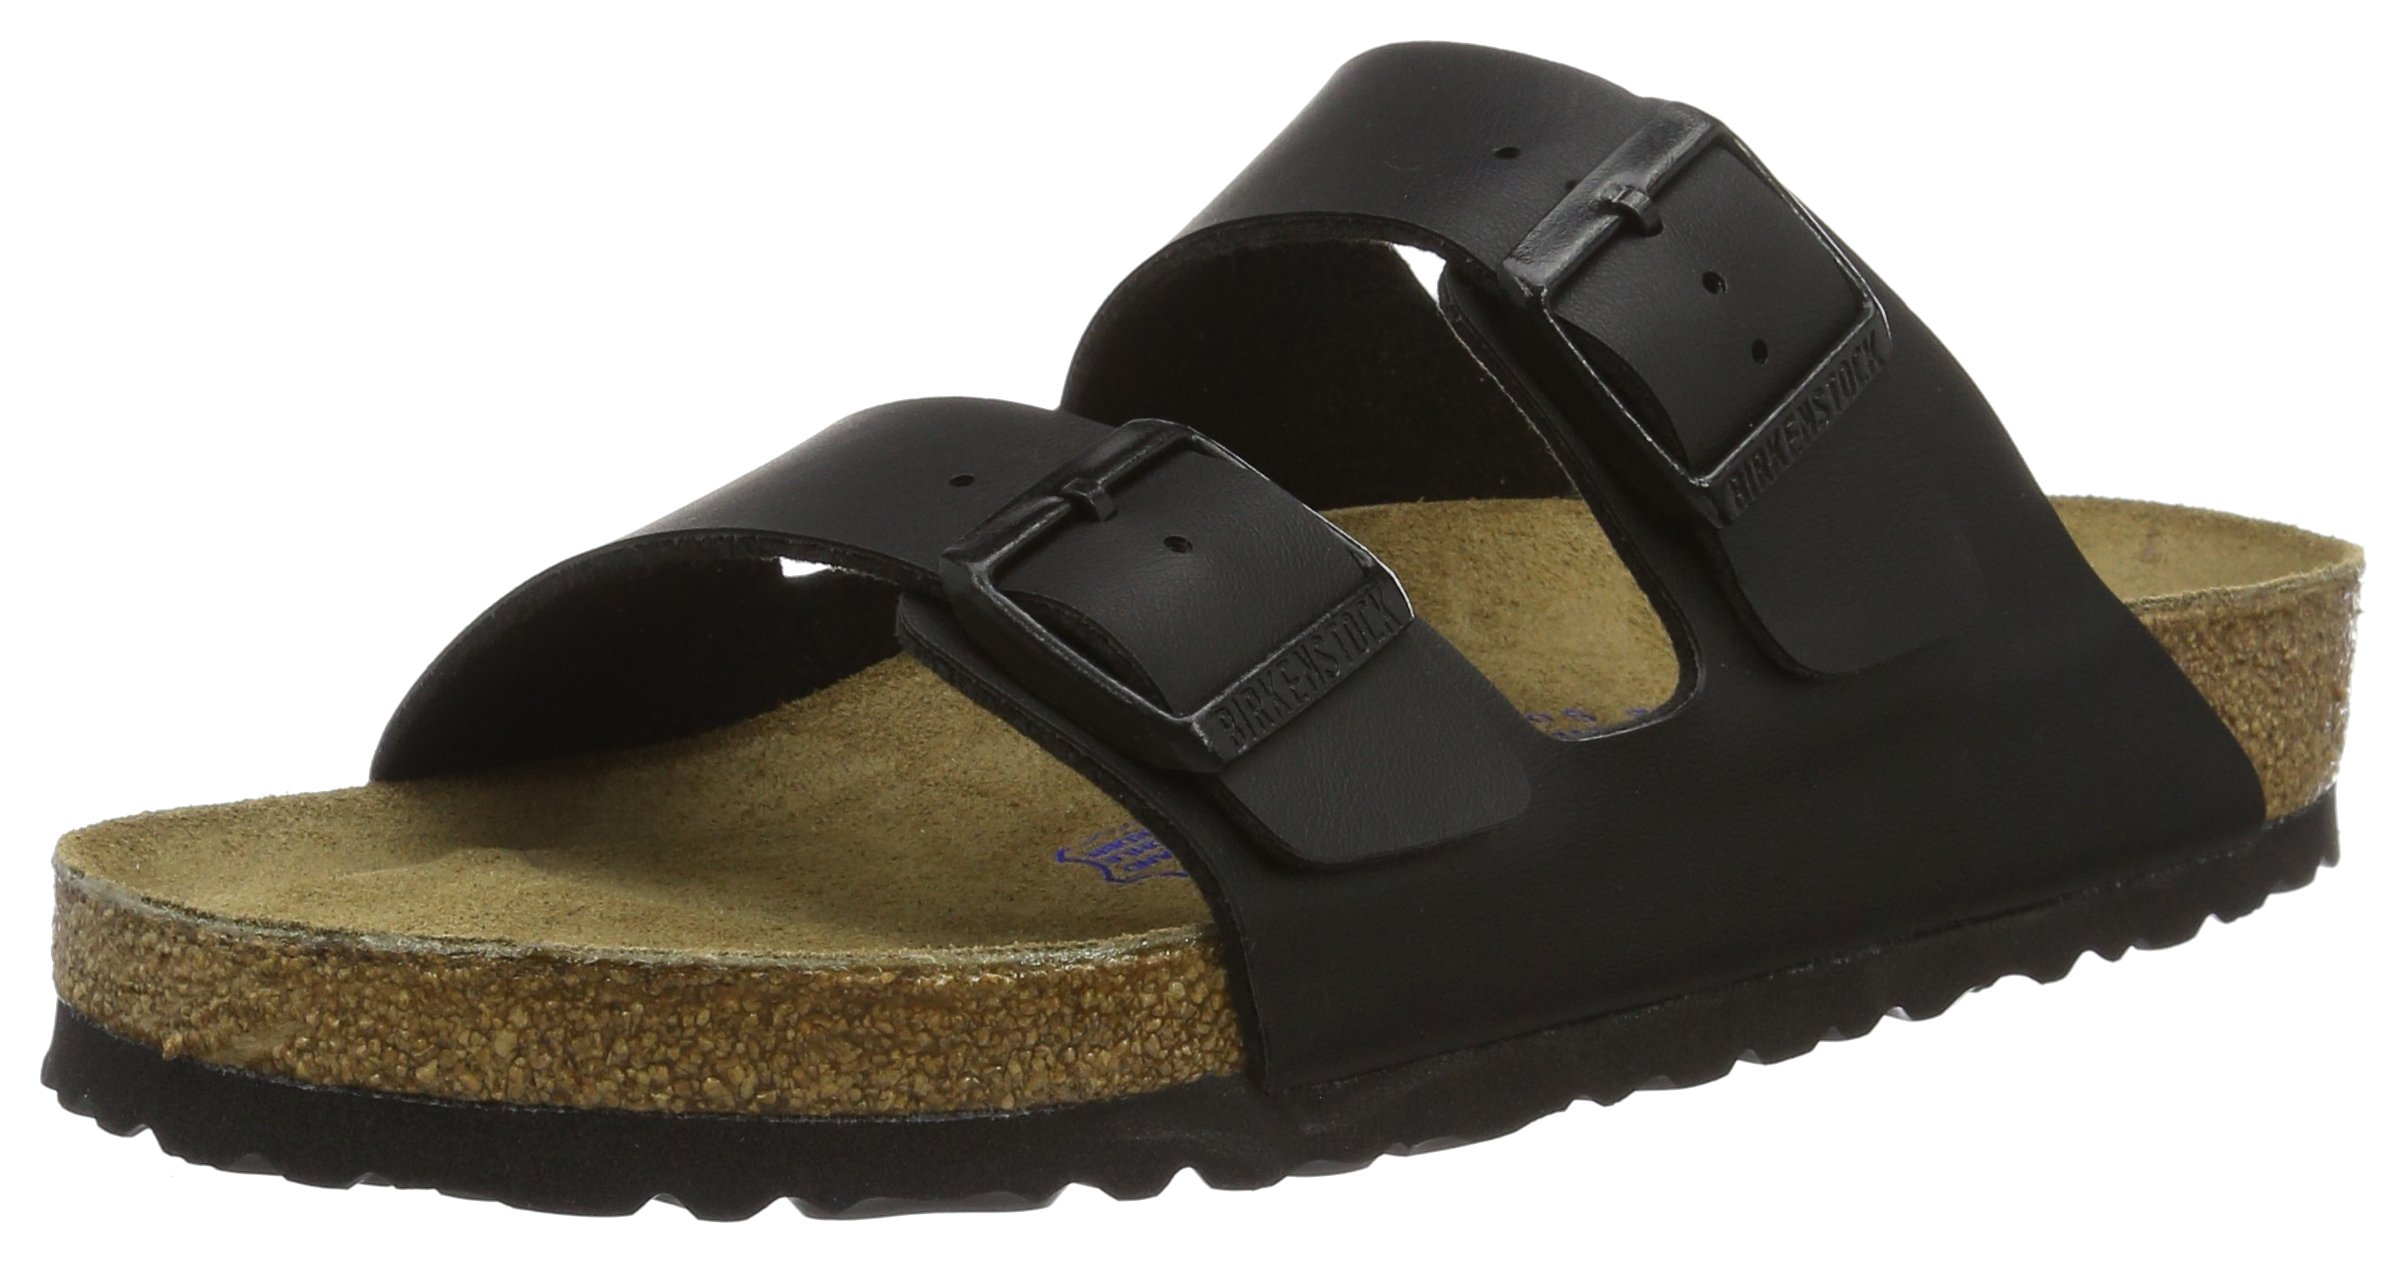 Birkenstock BIRK-51793 Arizona Sandals, Black, 38 EU Regular